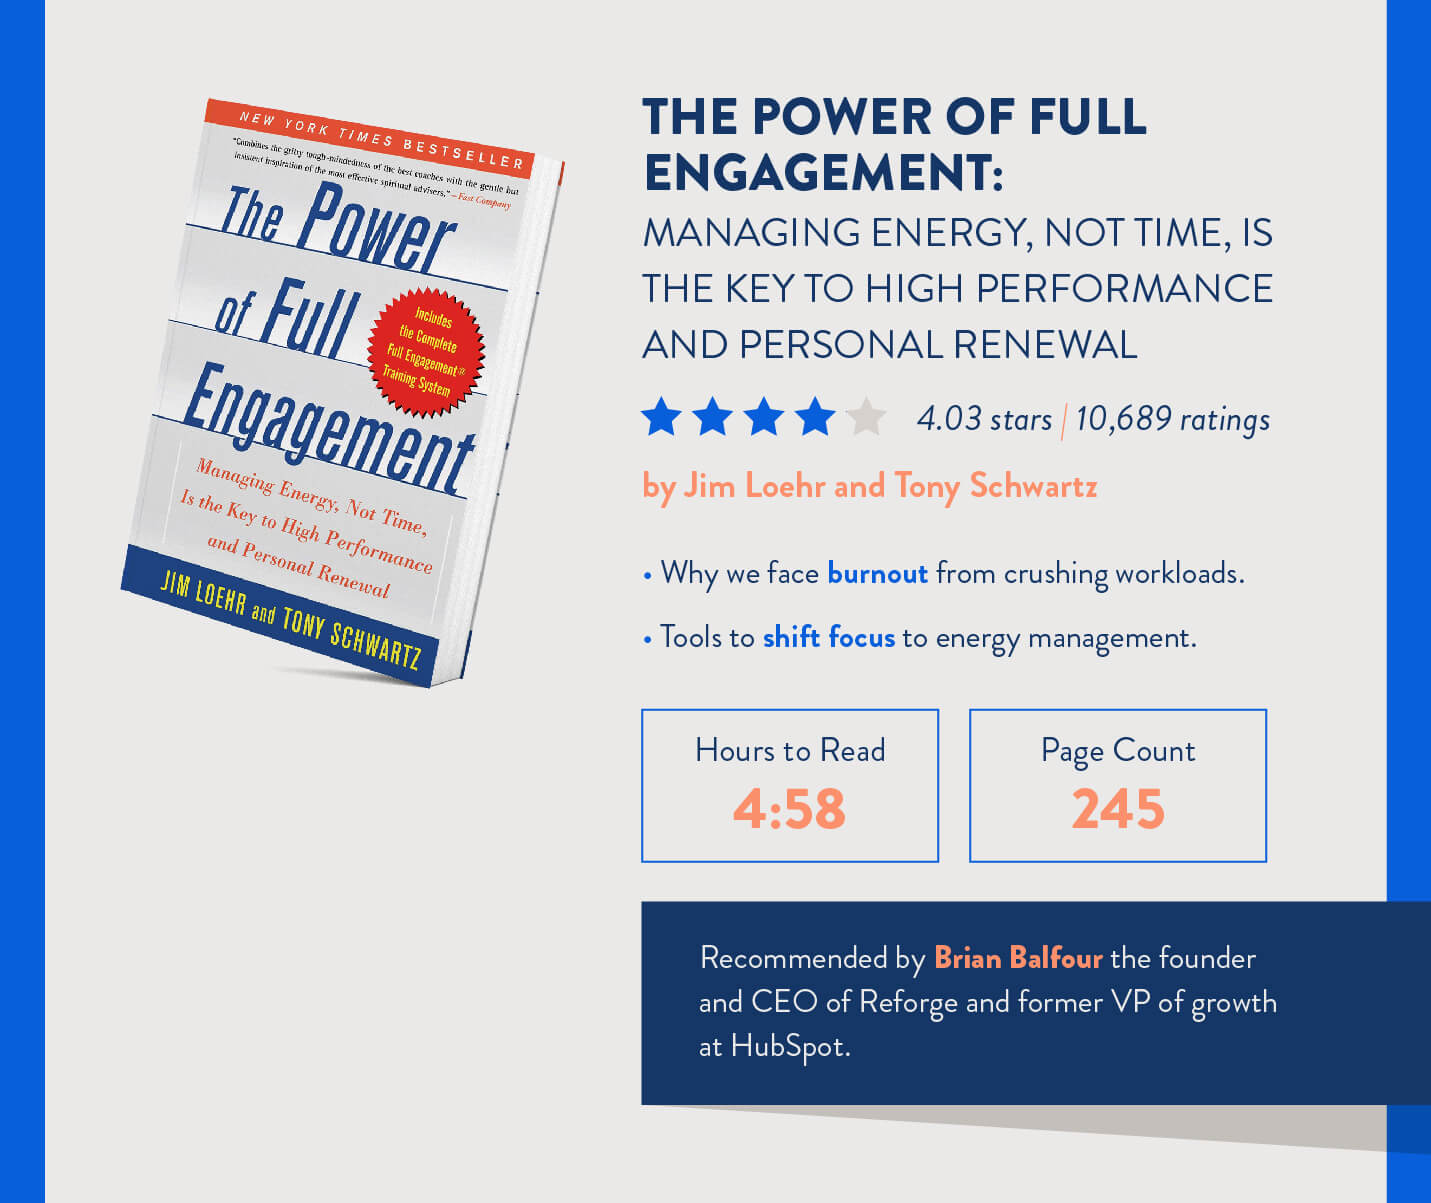 power of full engagement energy regulation book for mobile marketers with how long it takes to read and topics for discussion